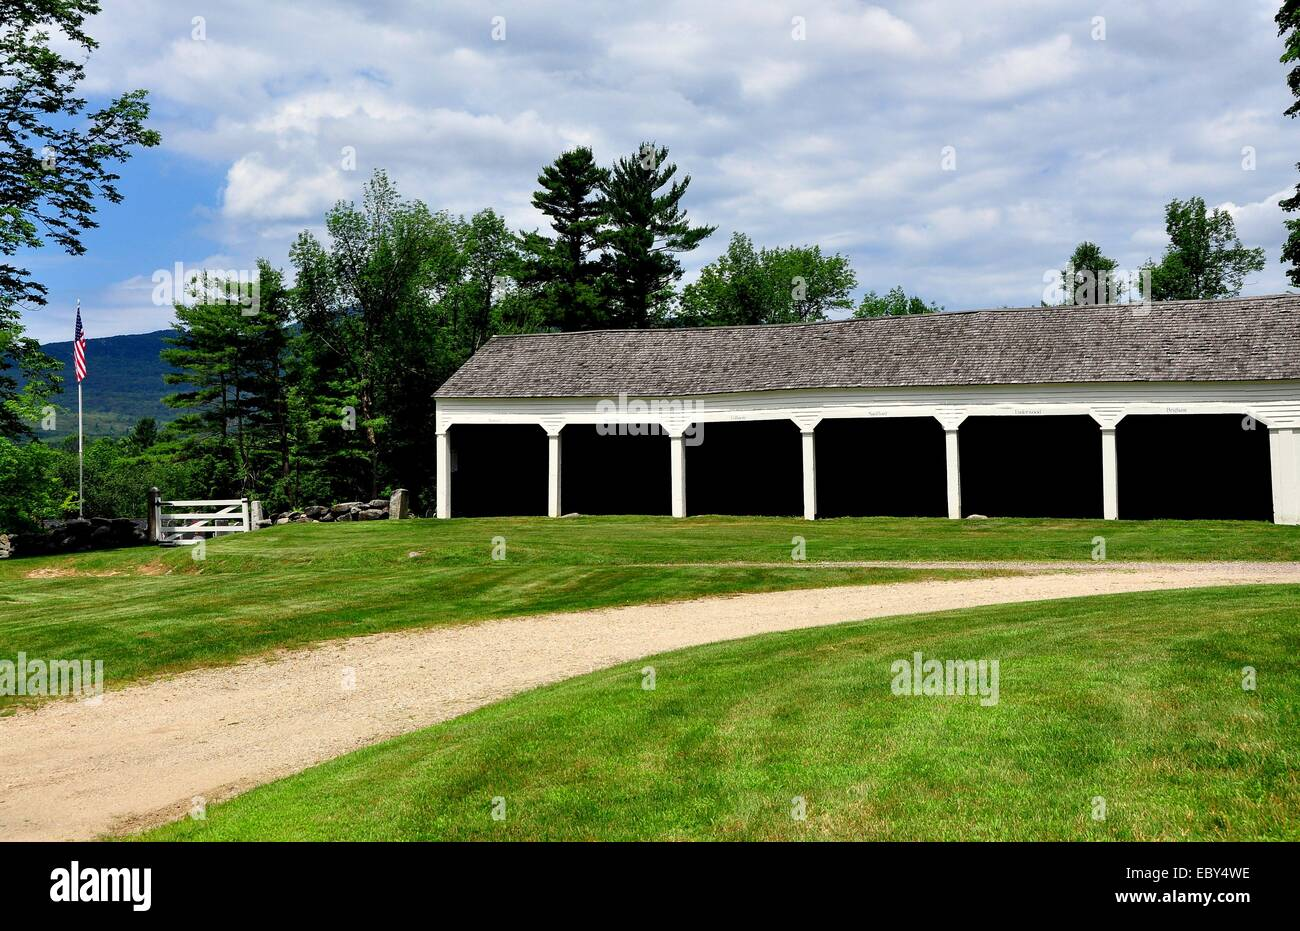 JAFFREY CENTER, NEW HAMPSHIRE:  A row of wooden stables for parishoner's horse carriages next to the 1775 Original - Stock Image